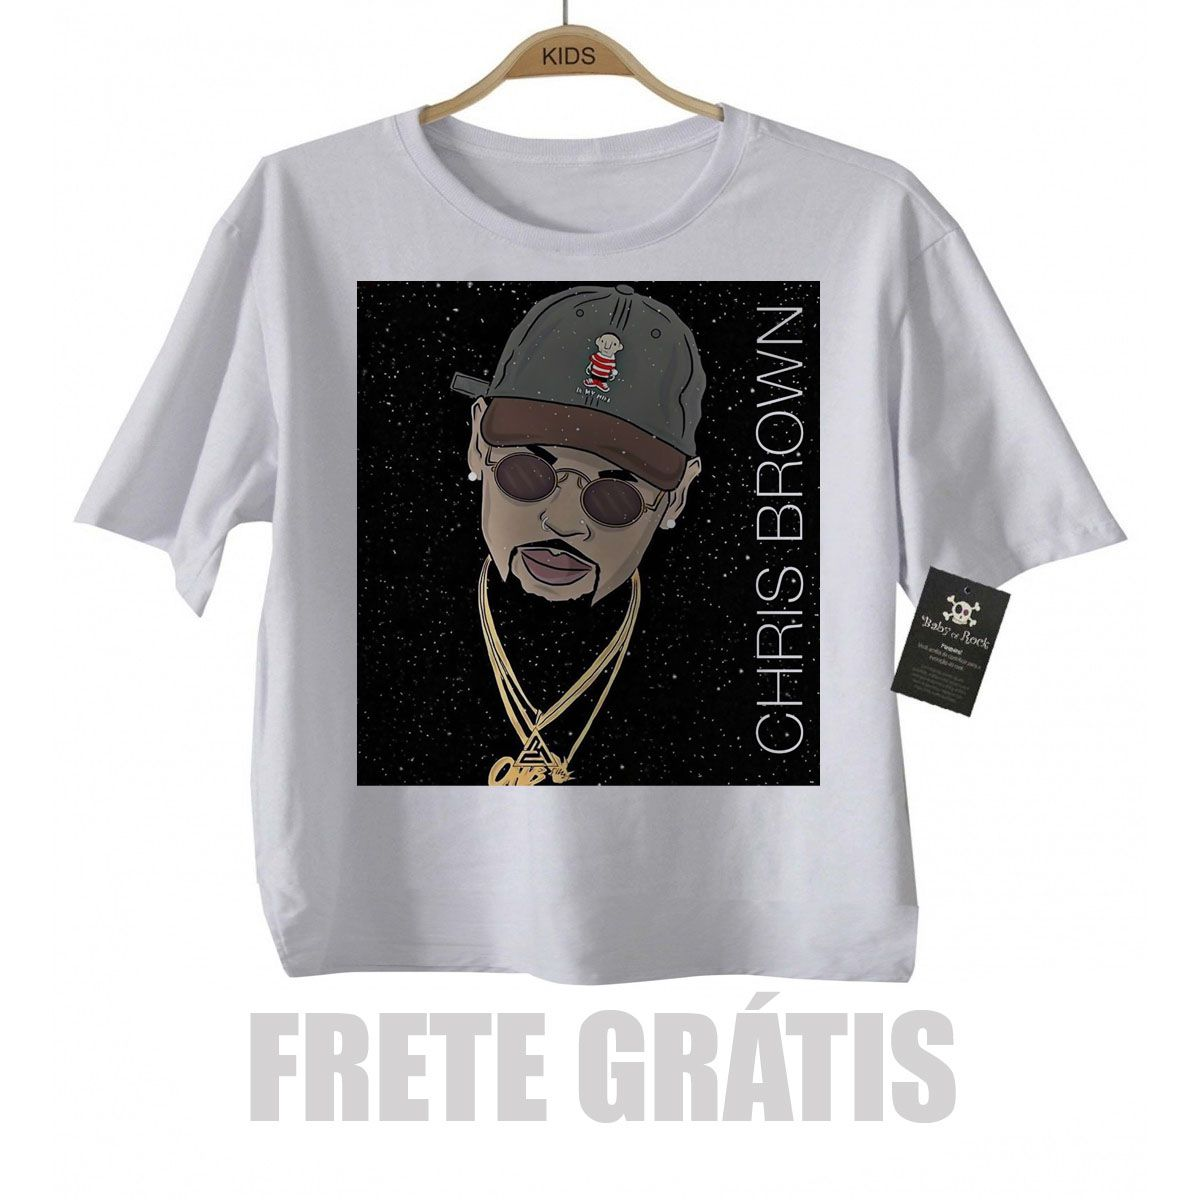 Camiseta Infantil Rap / Hip hop  Chris Brown - White  - Baby Monster S/A